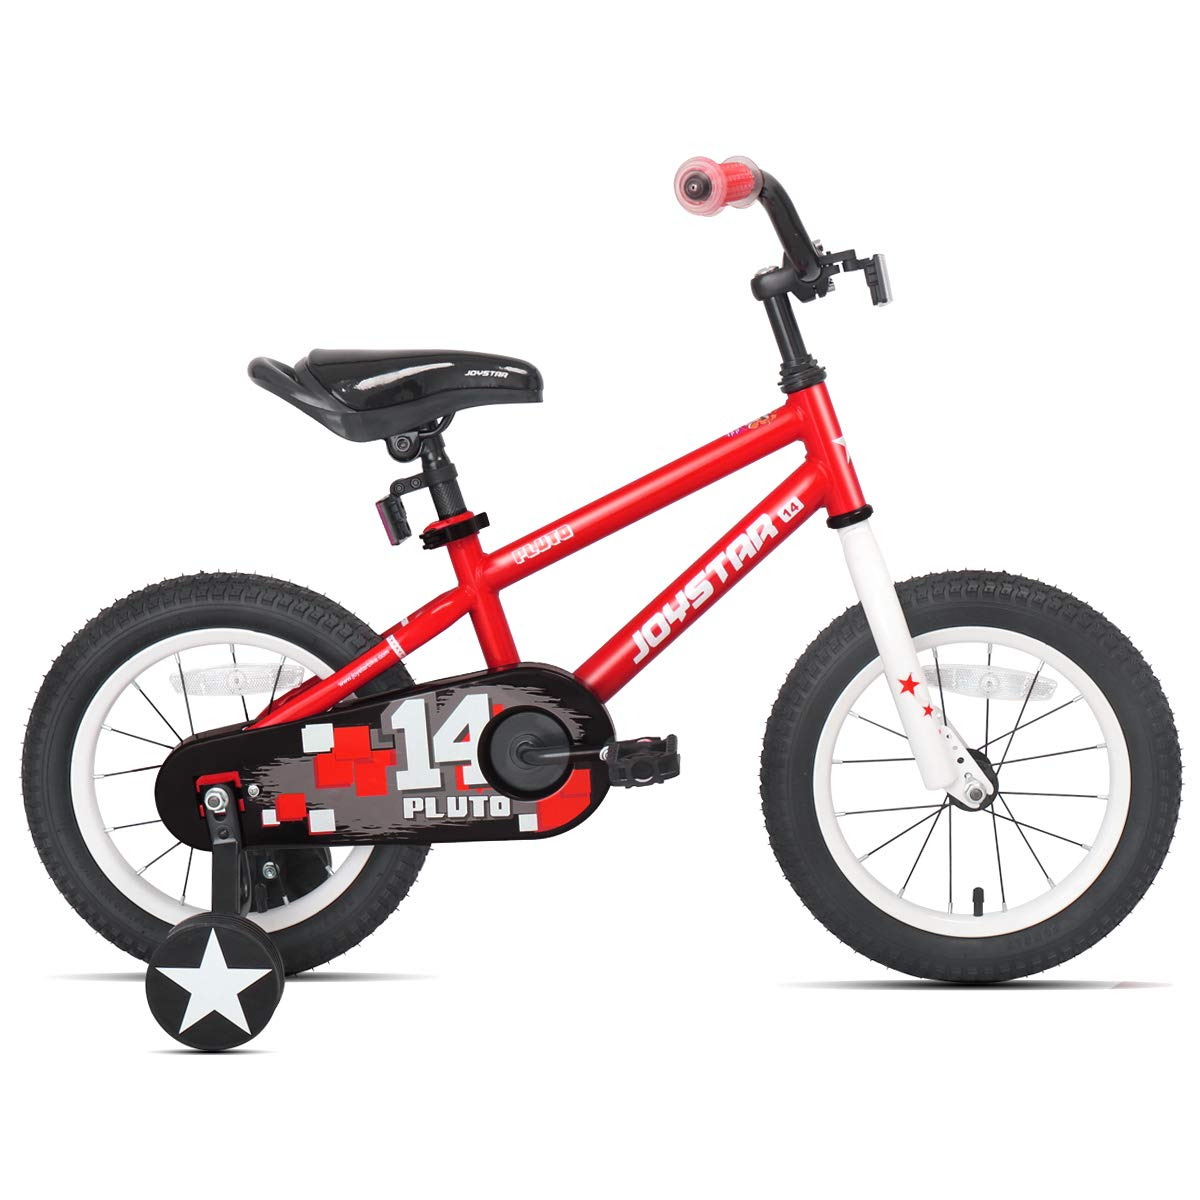 JOYSTAR 12'' Pluto Kids Bike with Training Wheels for 2 3 4 Year Old Boys & Girls, Unisex Kids Bicycle, Pedal Cycle for Toddlers, Red by JOYSTAR (Image #2)